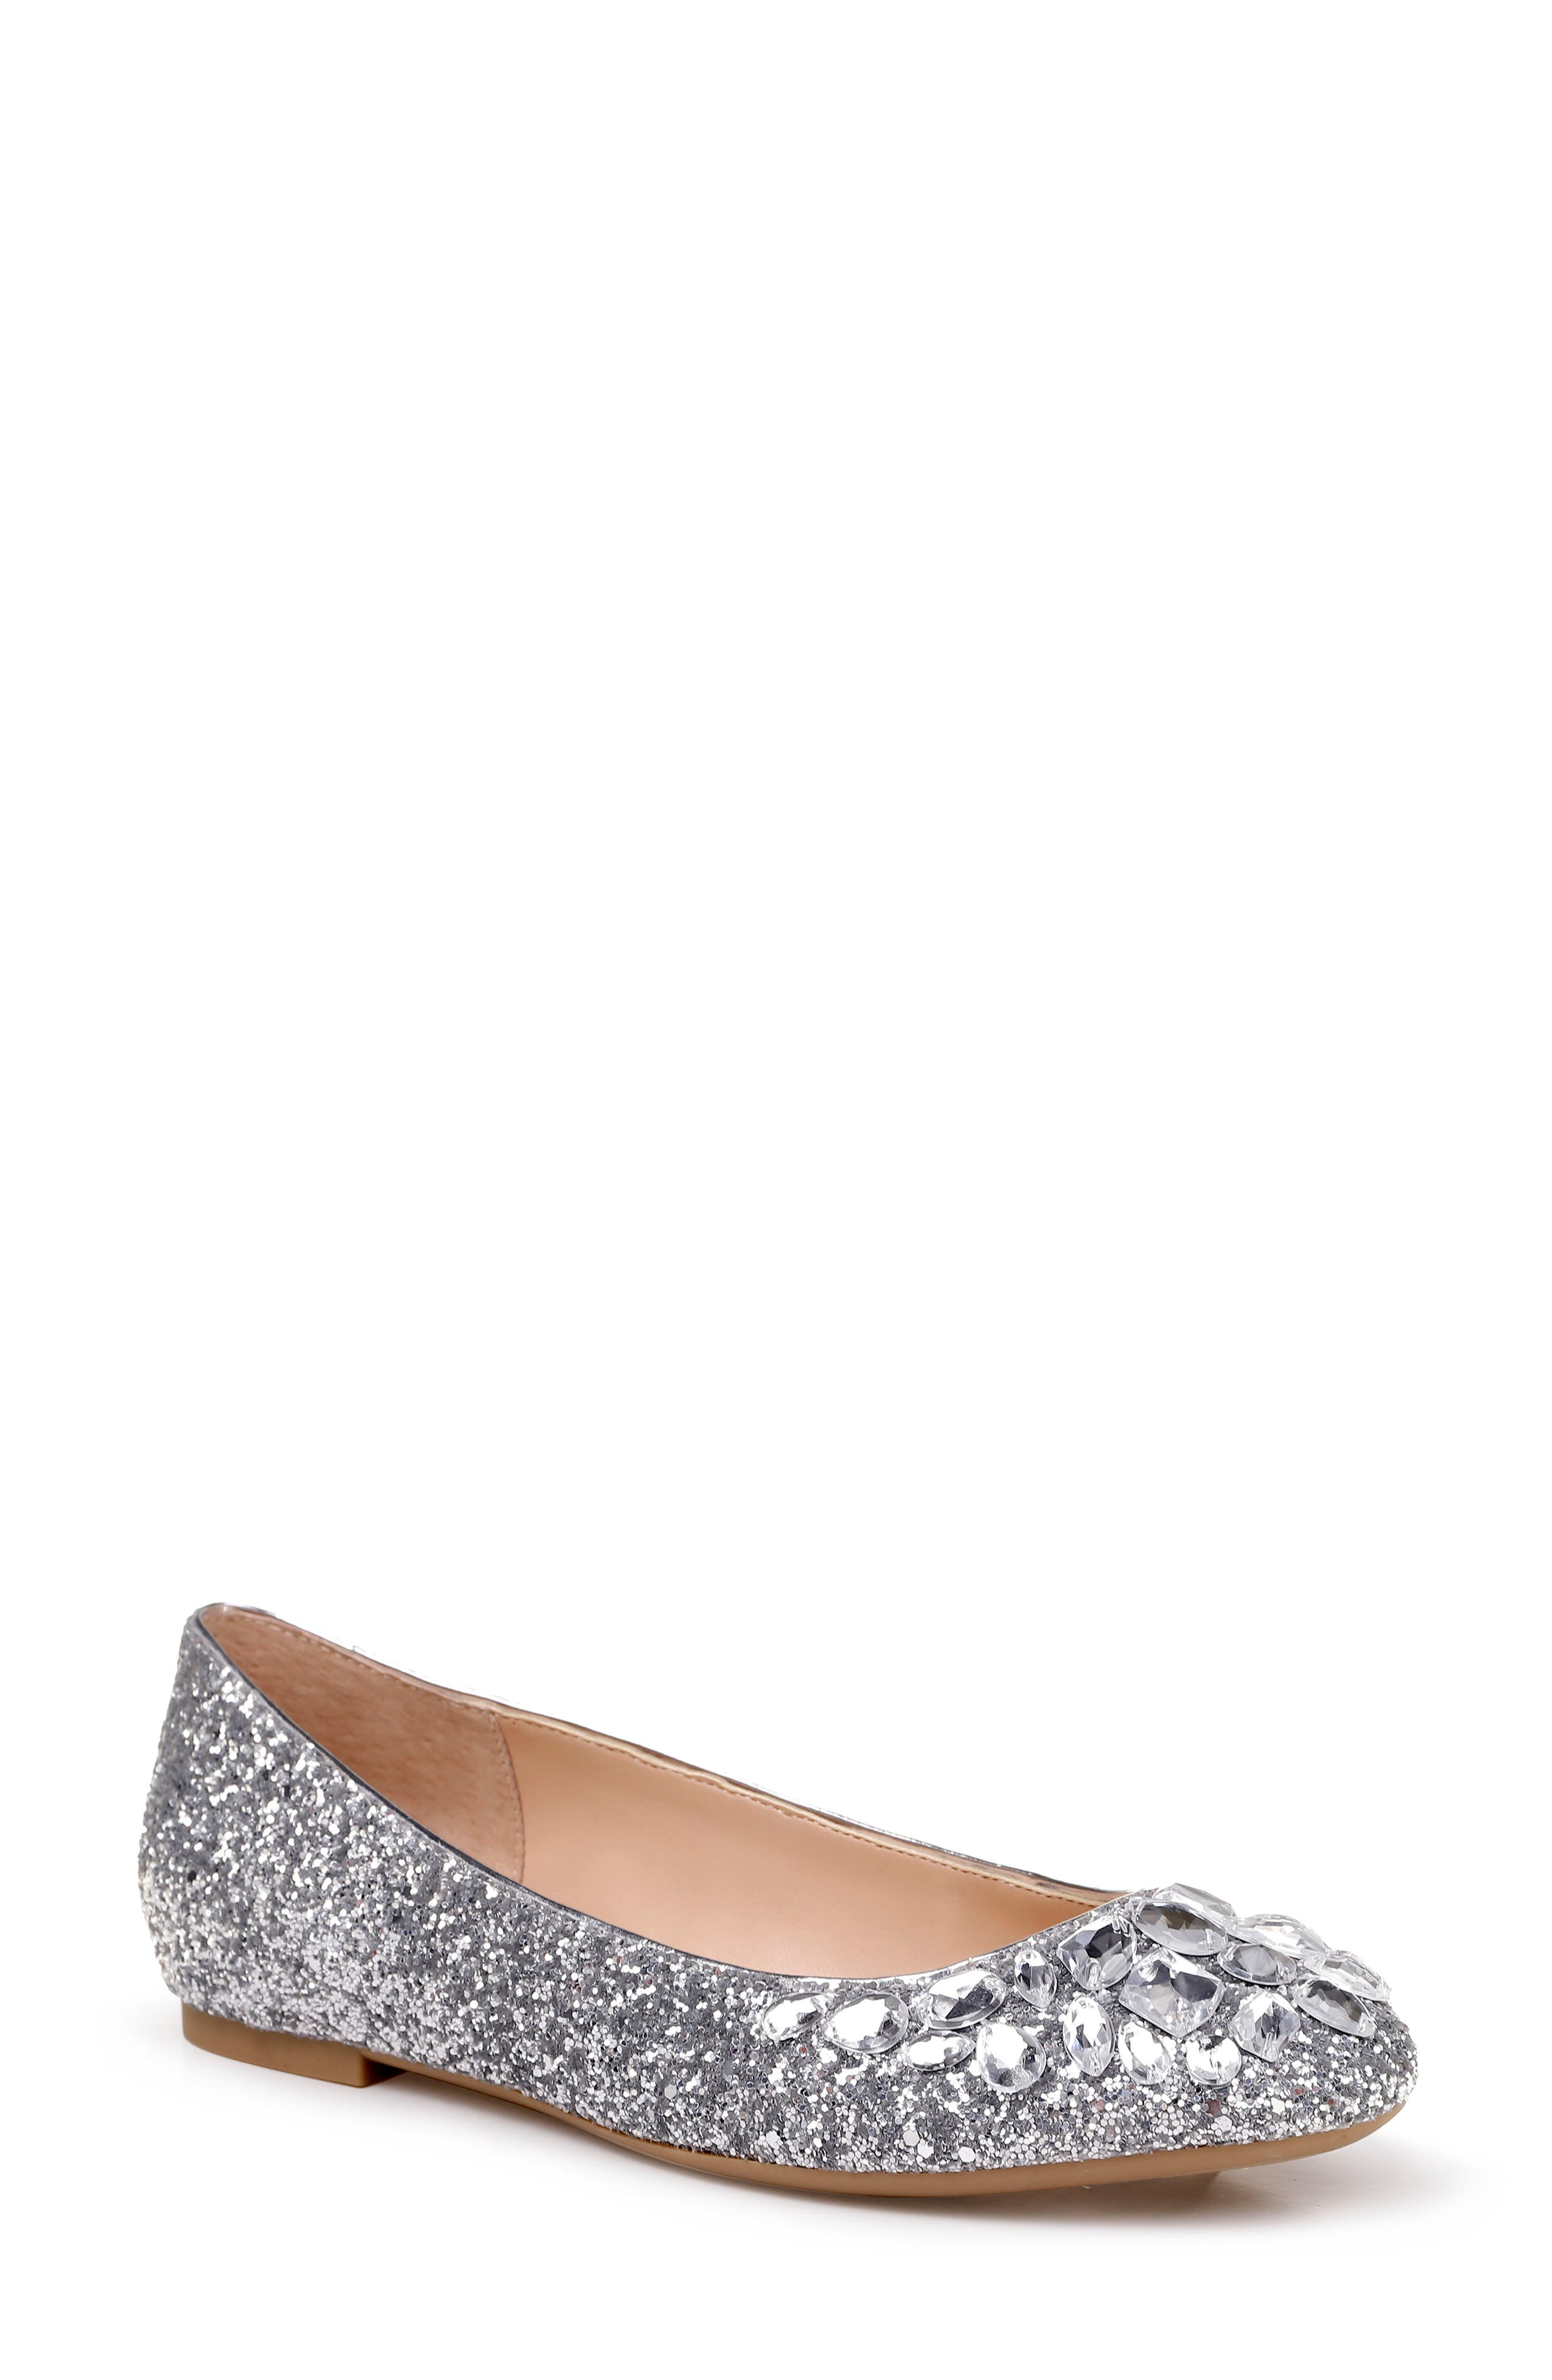 JEWEL BADGLEY MISCHKA Mathilda Embellished Ballet Flat, Main, color, SILVER GLITTER